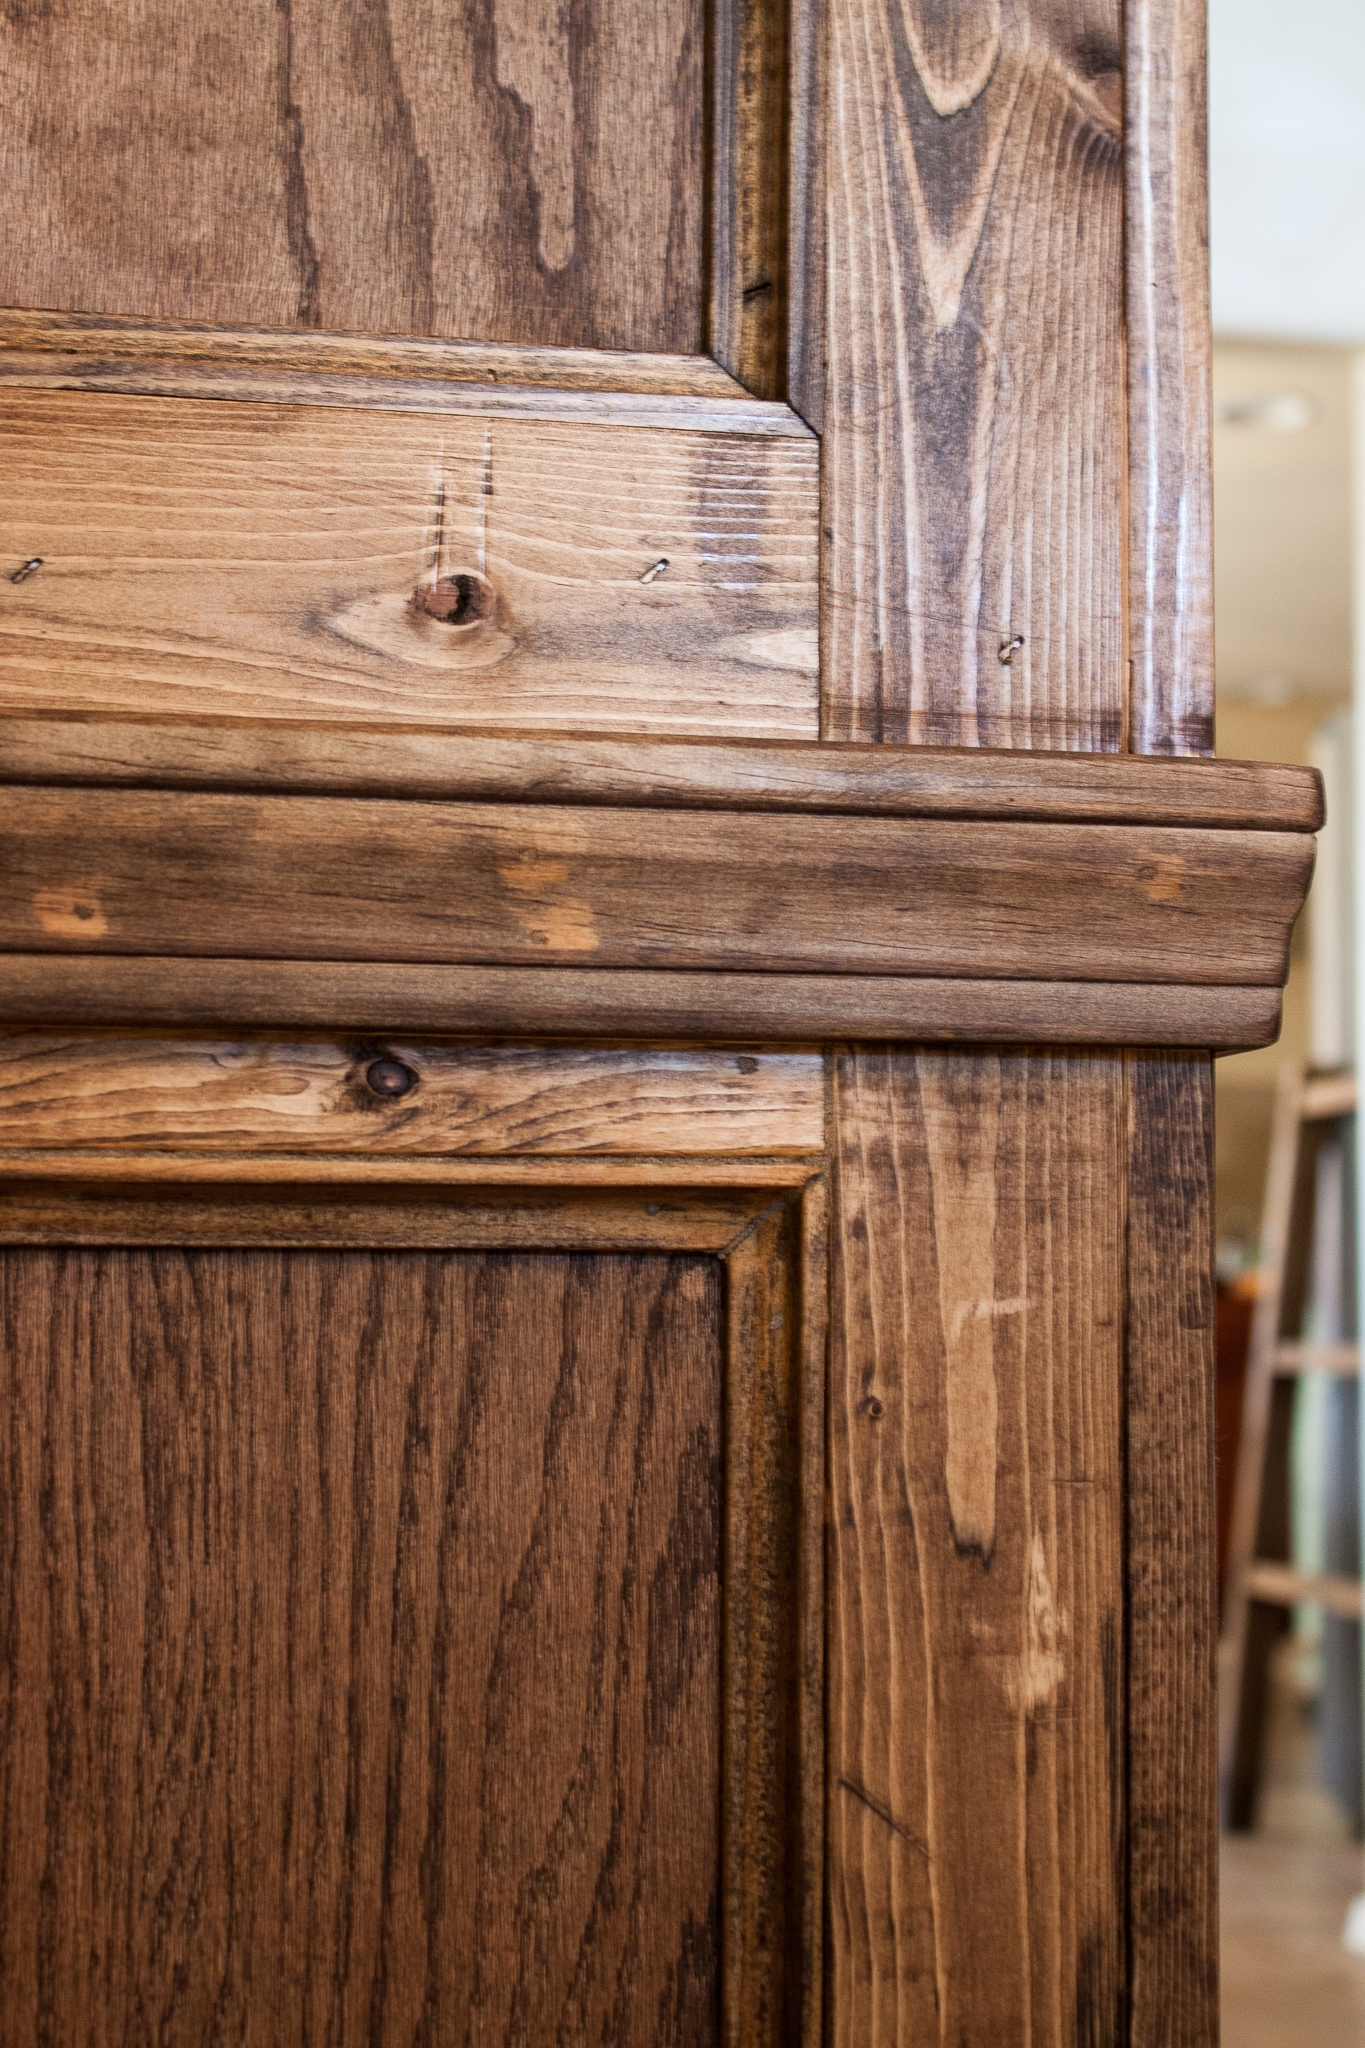 Ana White | Finished My Shanty Hutch And Sideboard - Diy Projects regarding Walnut Finish Crown Moulding Sideboards (Image 5 of 30)